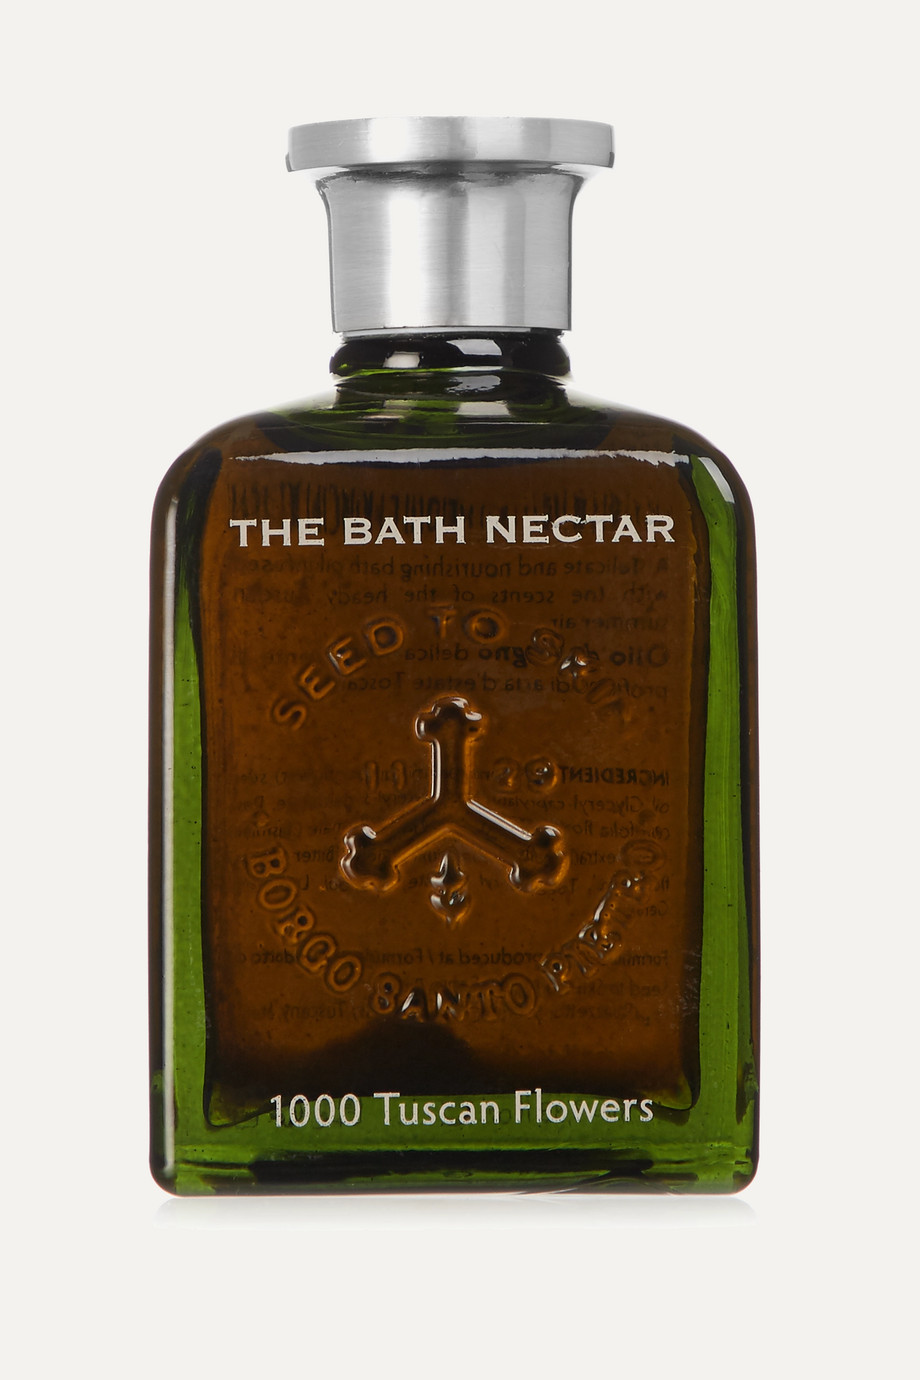 SEED TO SKIN The Bath Nectar - 1000 Tuscan Flowers, 100ml